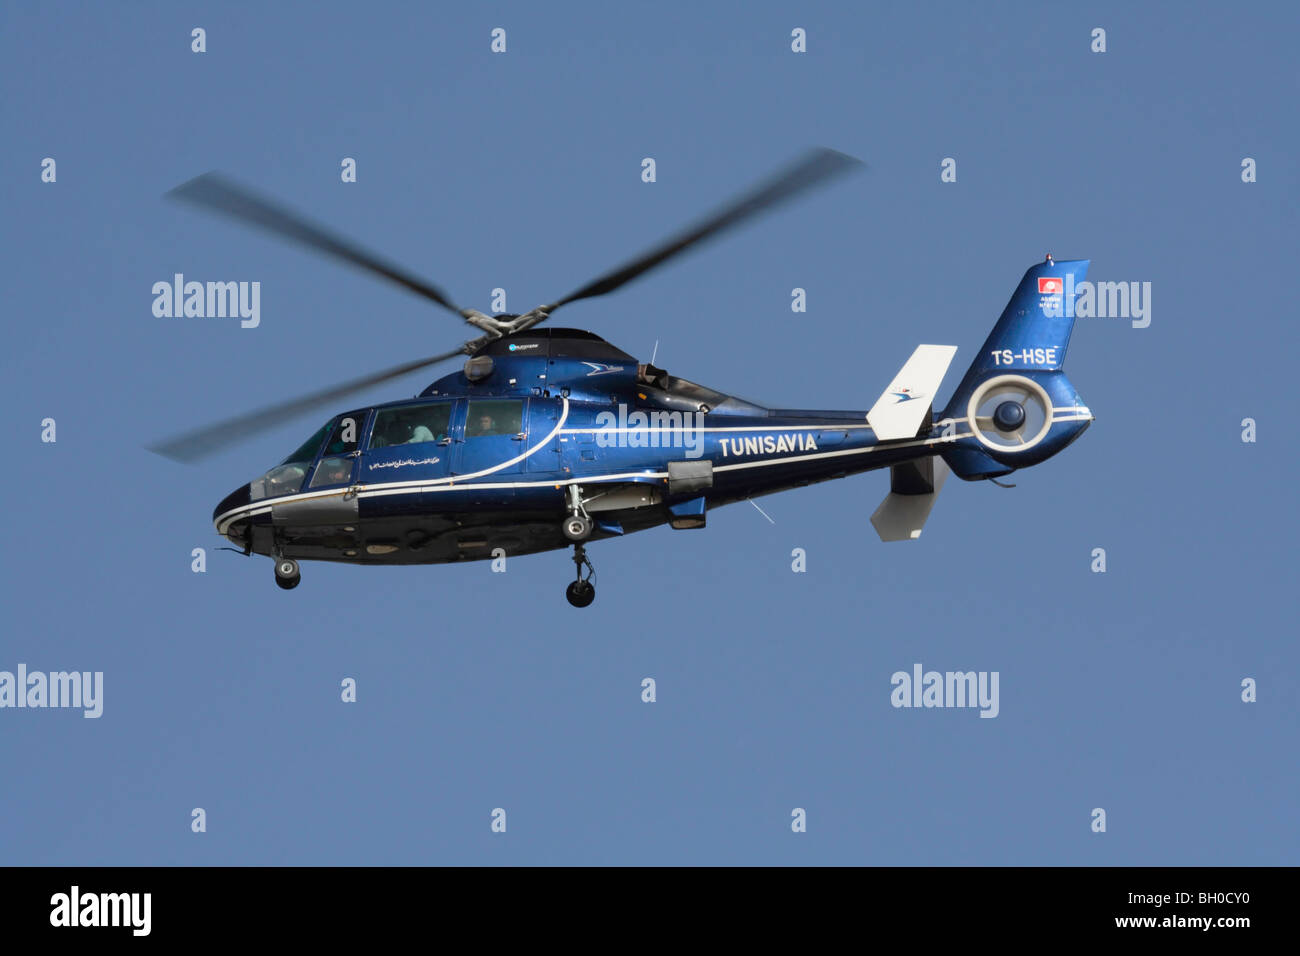 Eurocopter AS365 Dauphin helicopter operated by Tunisavia Stock Photo